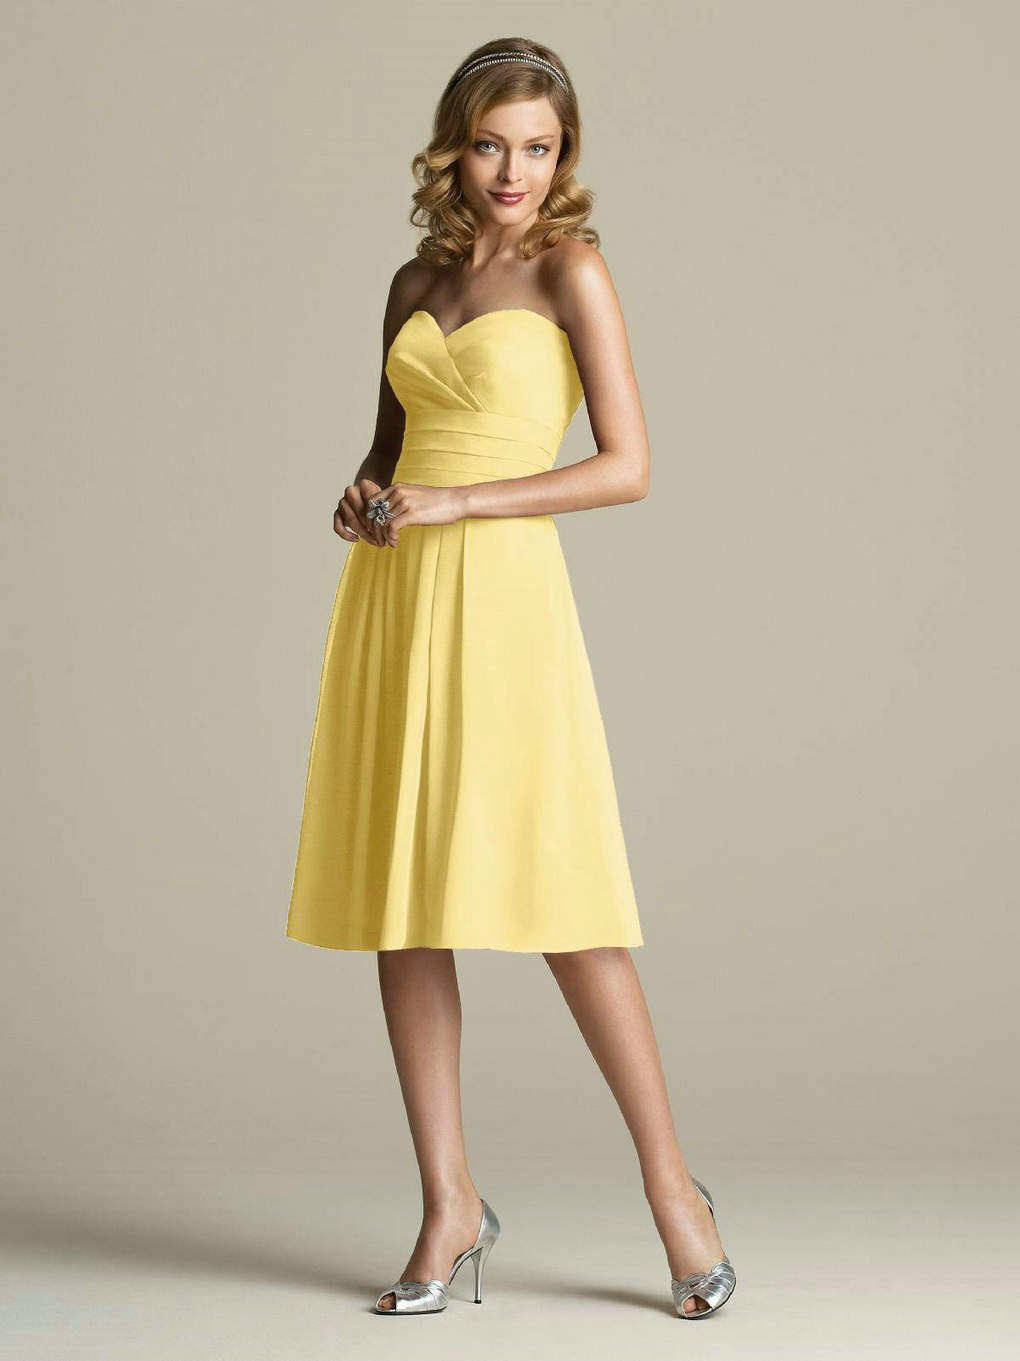 robe de soiree jaune pas cher With robe cocktail jaune